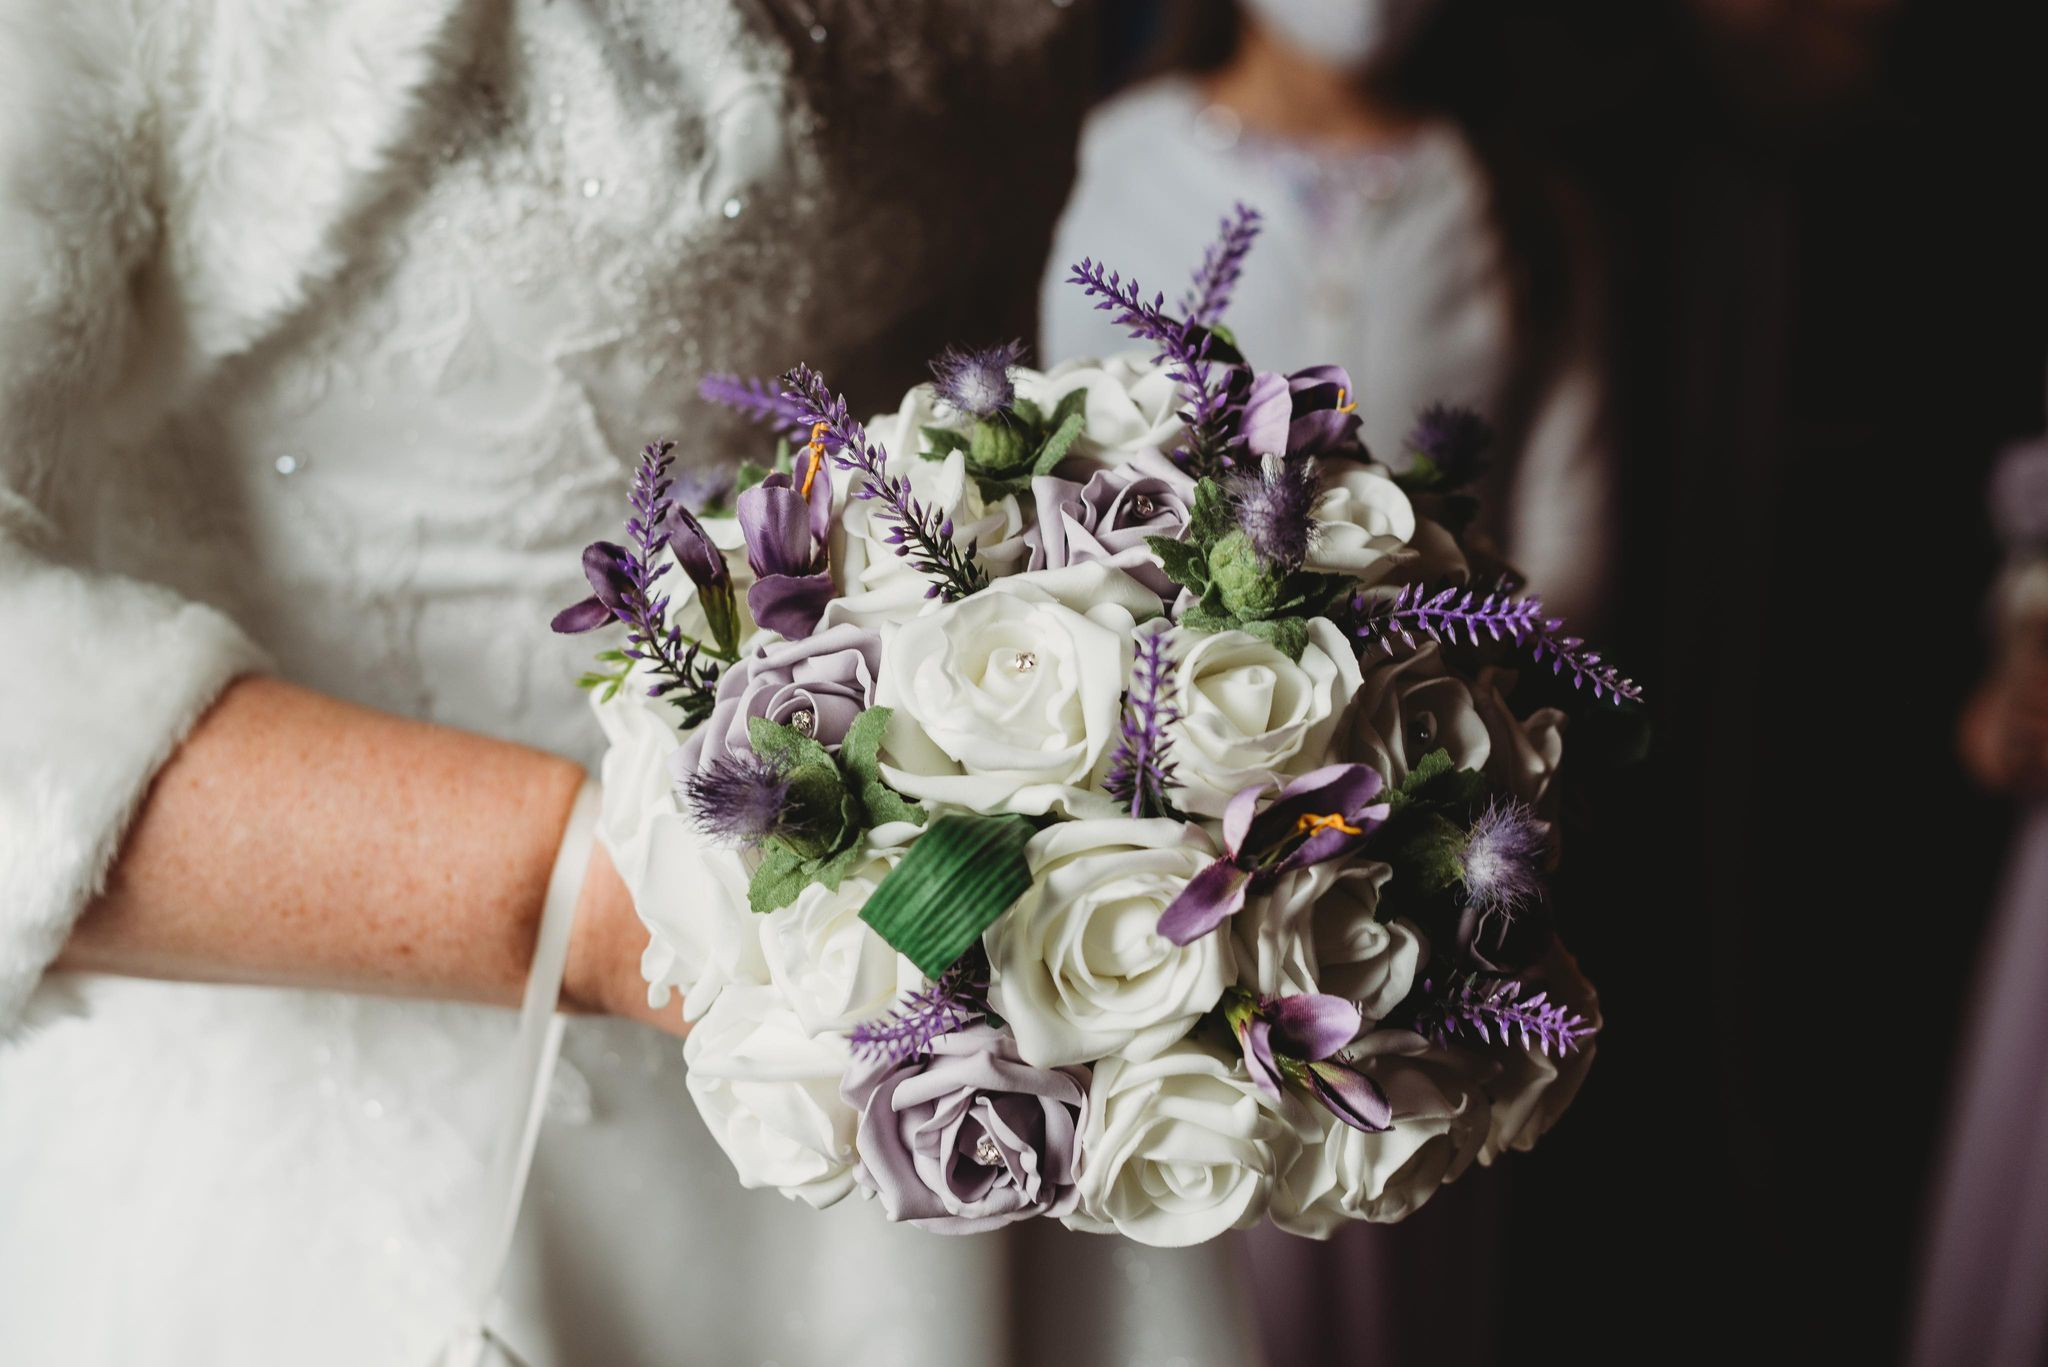 BEAUTIFUL: The couple described their wedding as 'intimate' and 'special'. Kolette Cartmel Photography